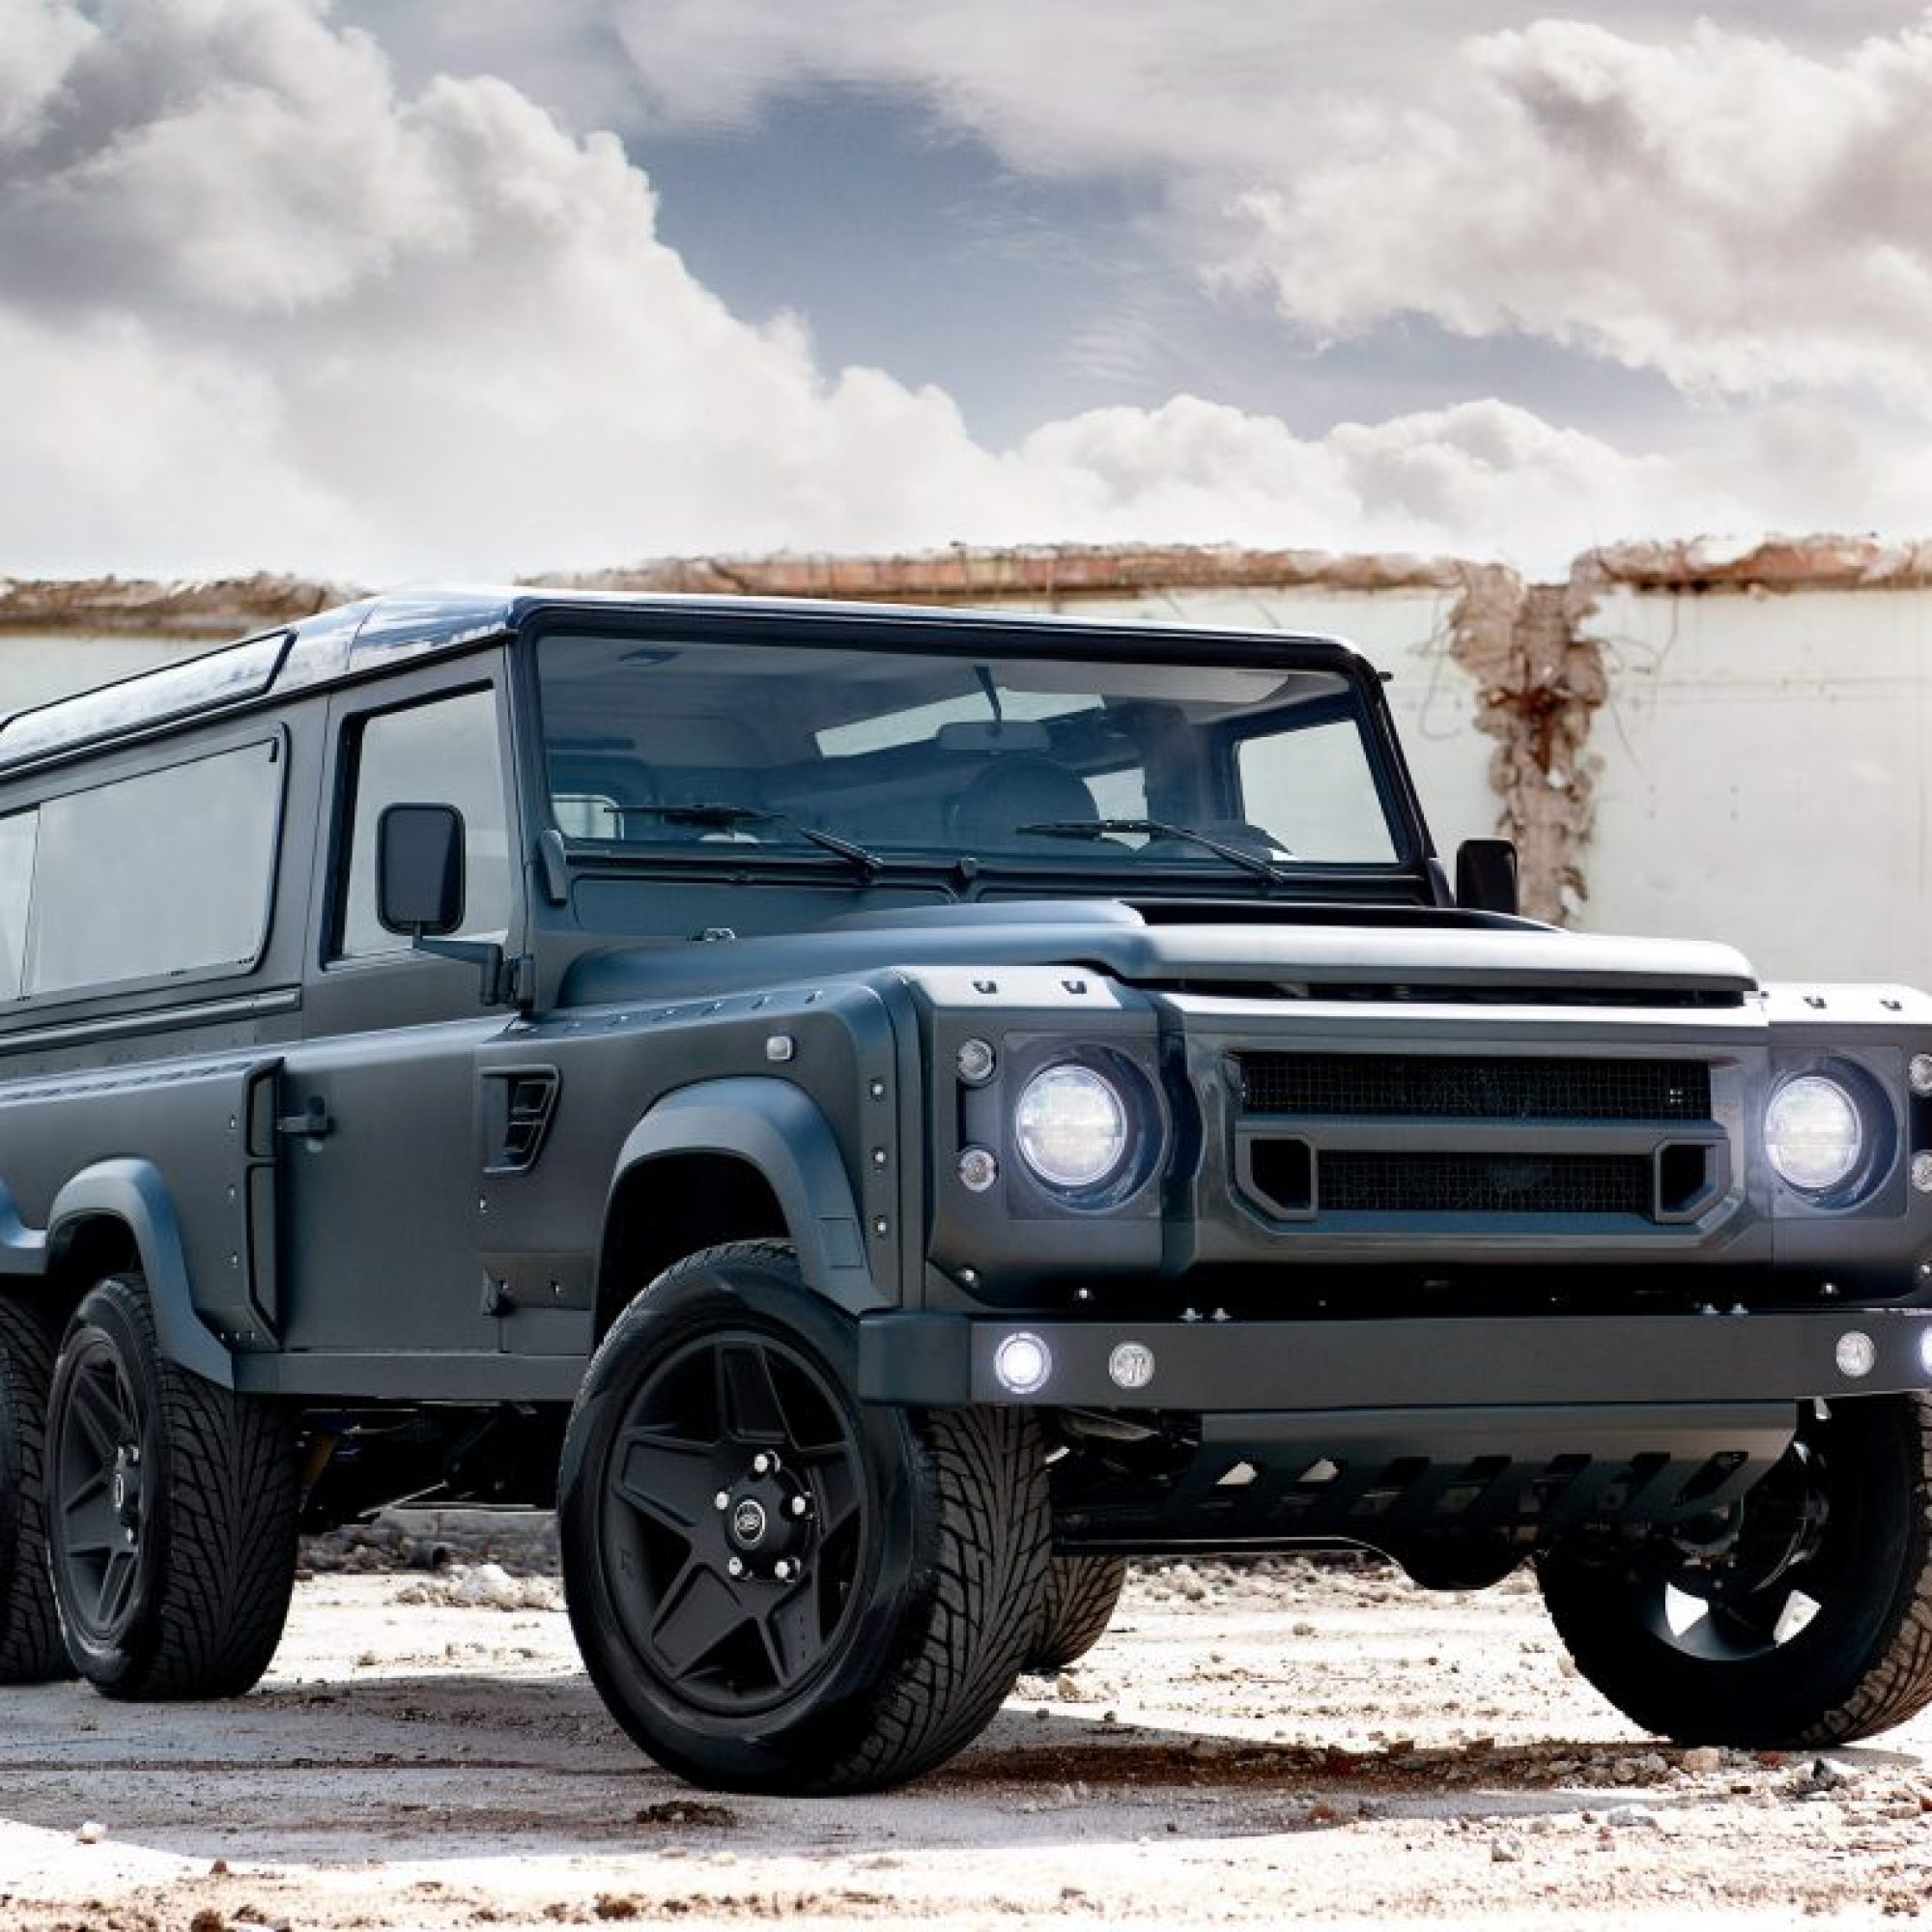 2015 Project Kahn Flying Huntsman 110 WB 6x6 Concept